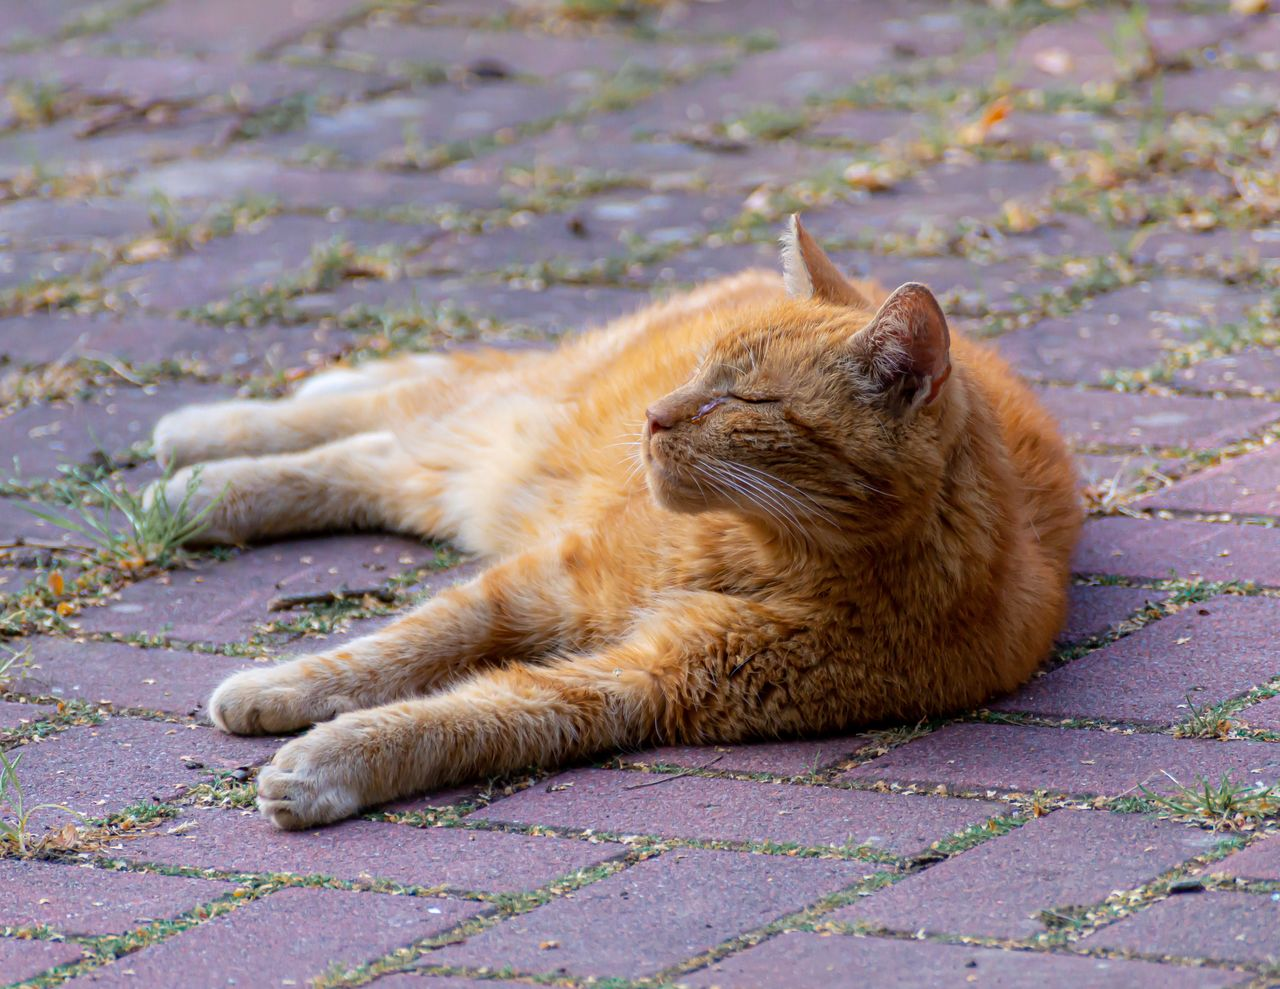 feline, cat, mammal, domestic cat, animal, animal themes, one animal, pets, domestic, relaxation, lying down, domestic animals, footpath, vertebrate, no people, whisker, resting, brown, day, city, ginger cat, paving stone